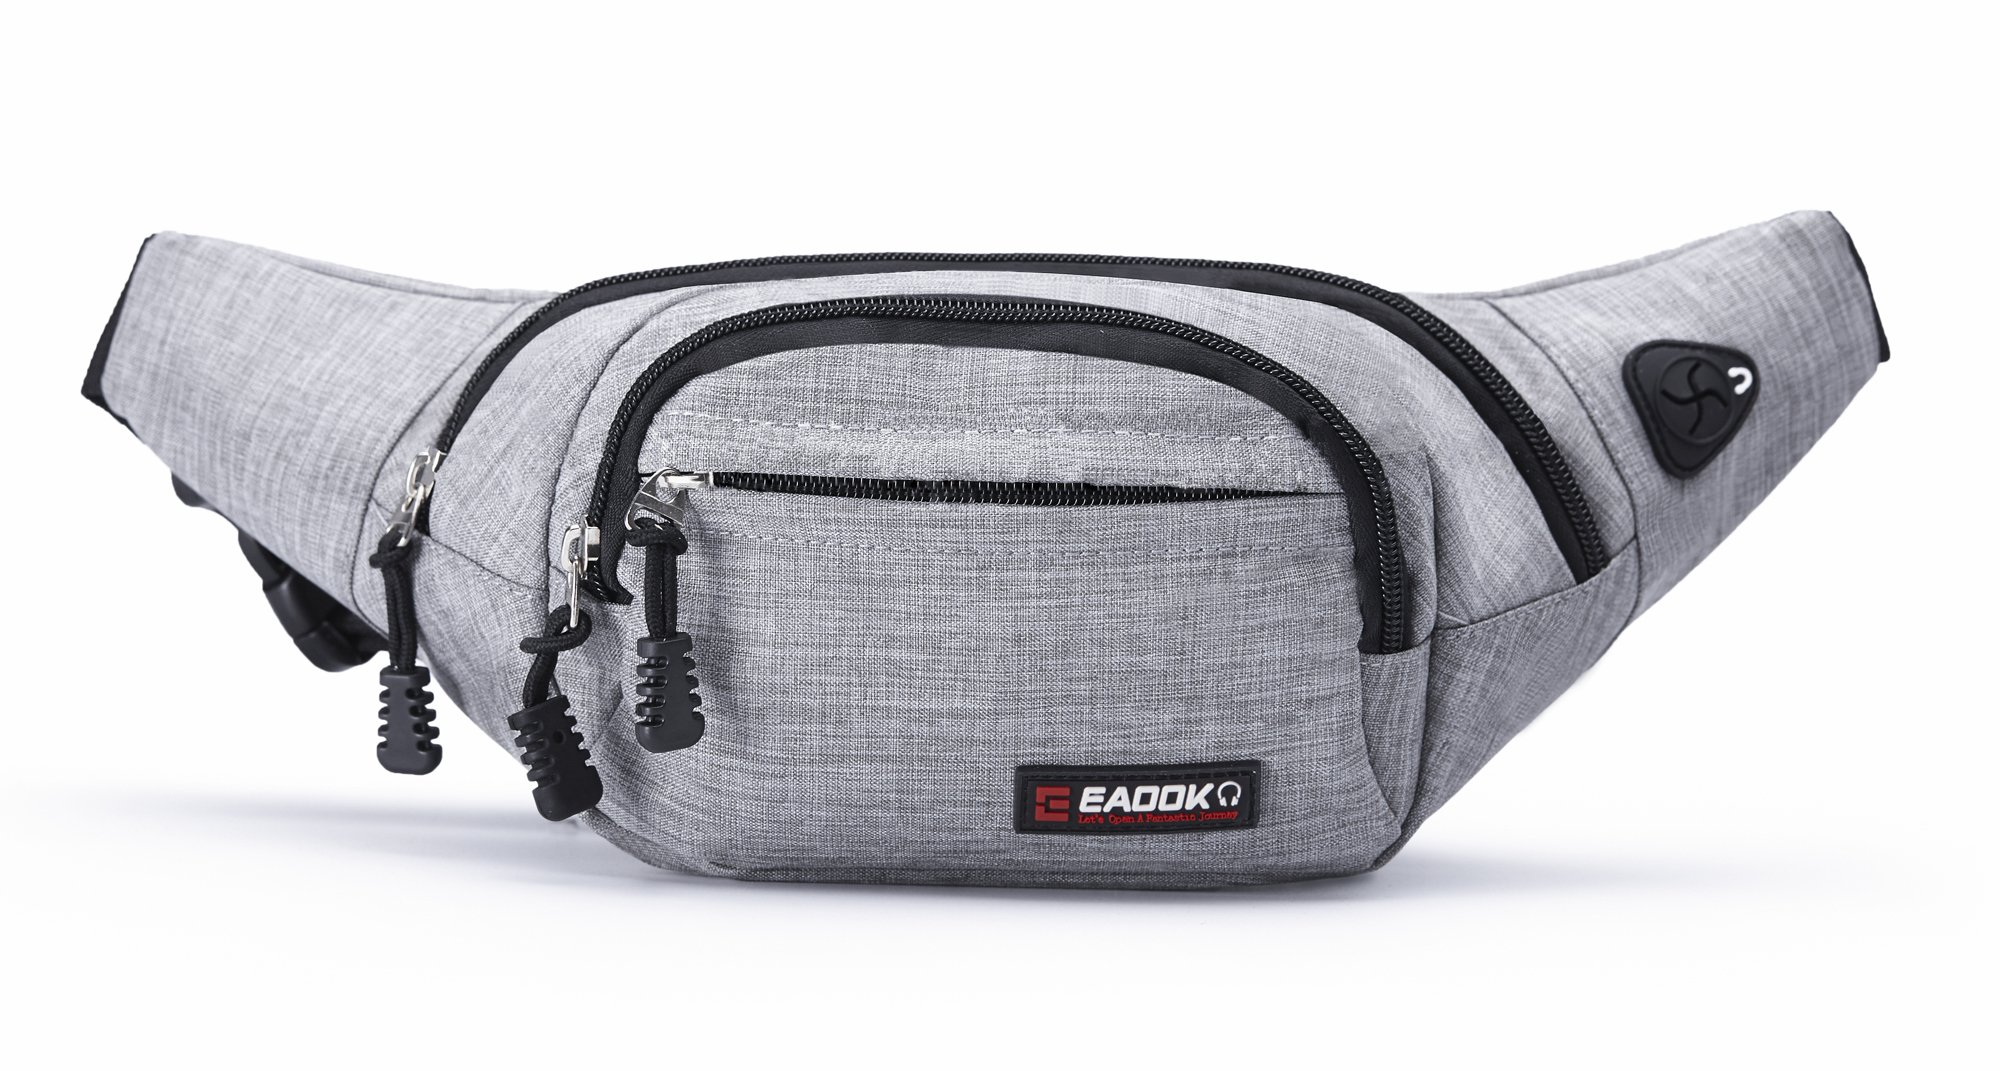 EAOOK Waterproof Travel Belt,Big Fanny Pack for Outdoor Sport/Money Belt(Grey) by EAOOK (Image #1)